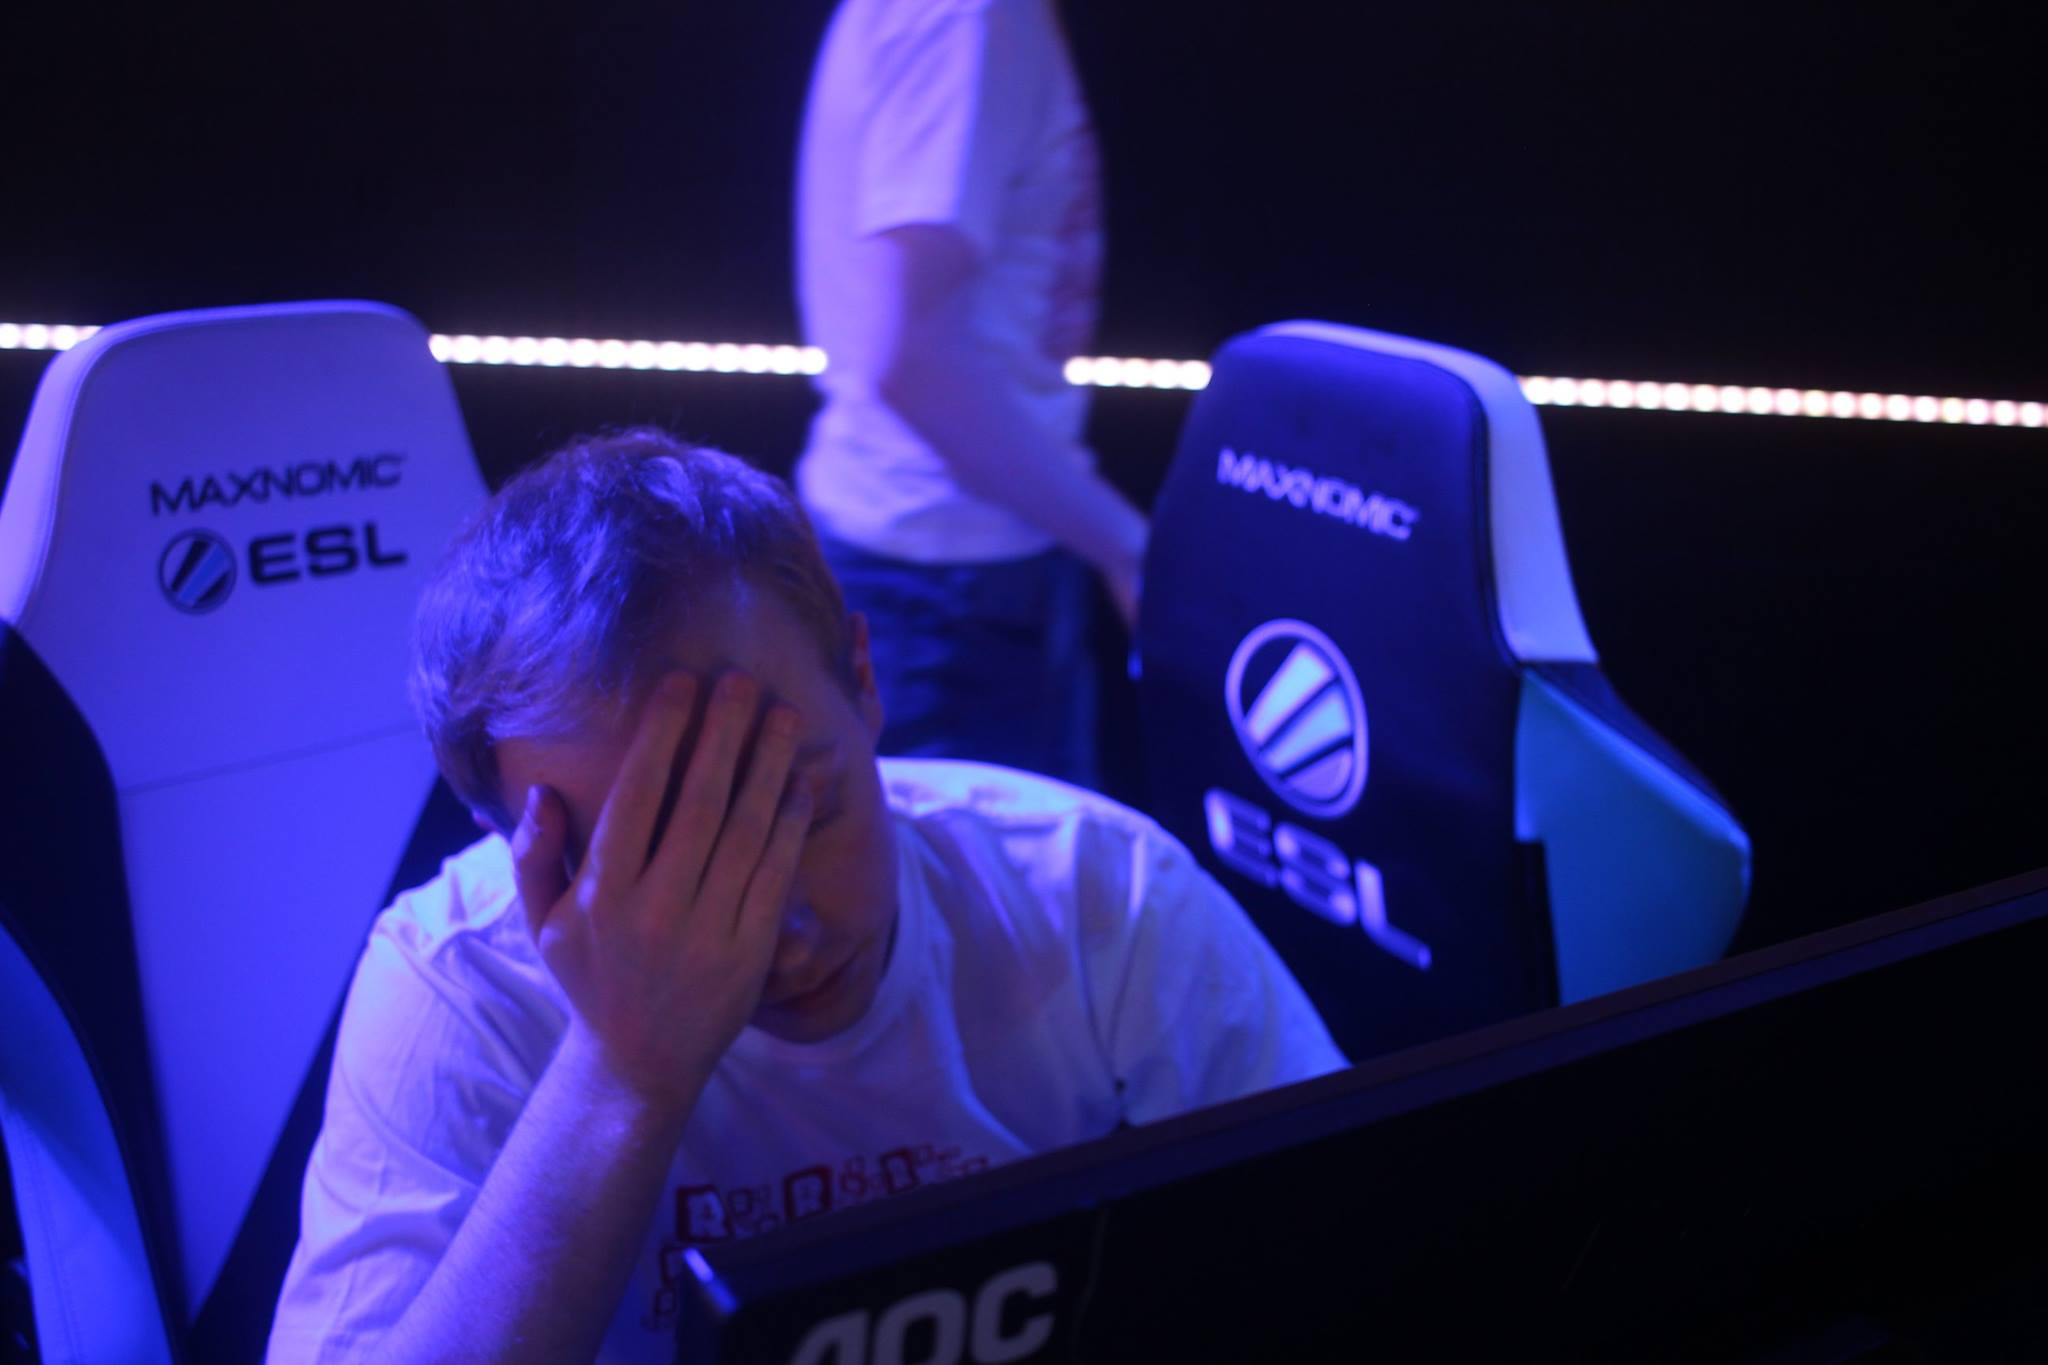 So close, yet so far as a long day comes to an end - Photo by UKCSGO.com